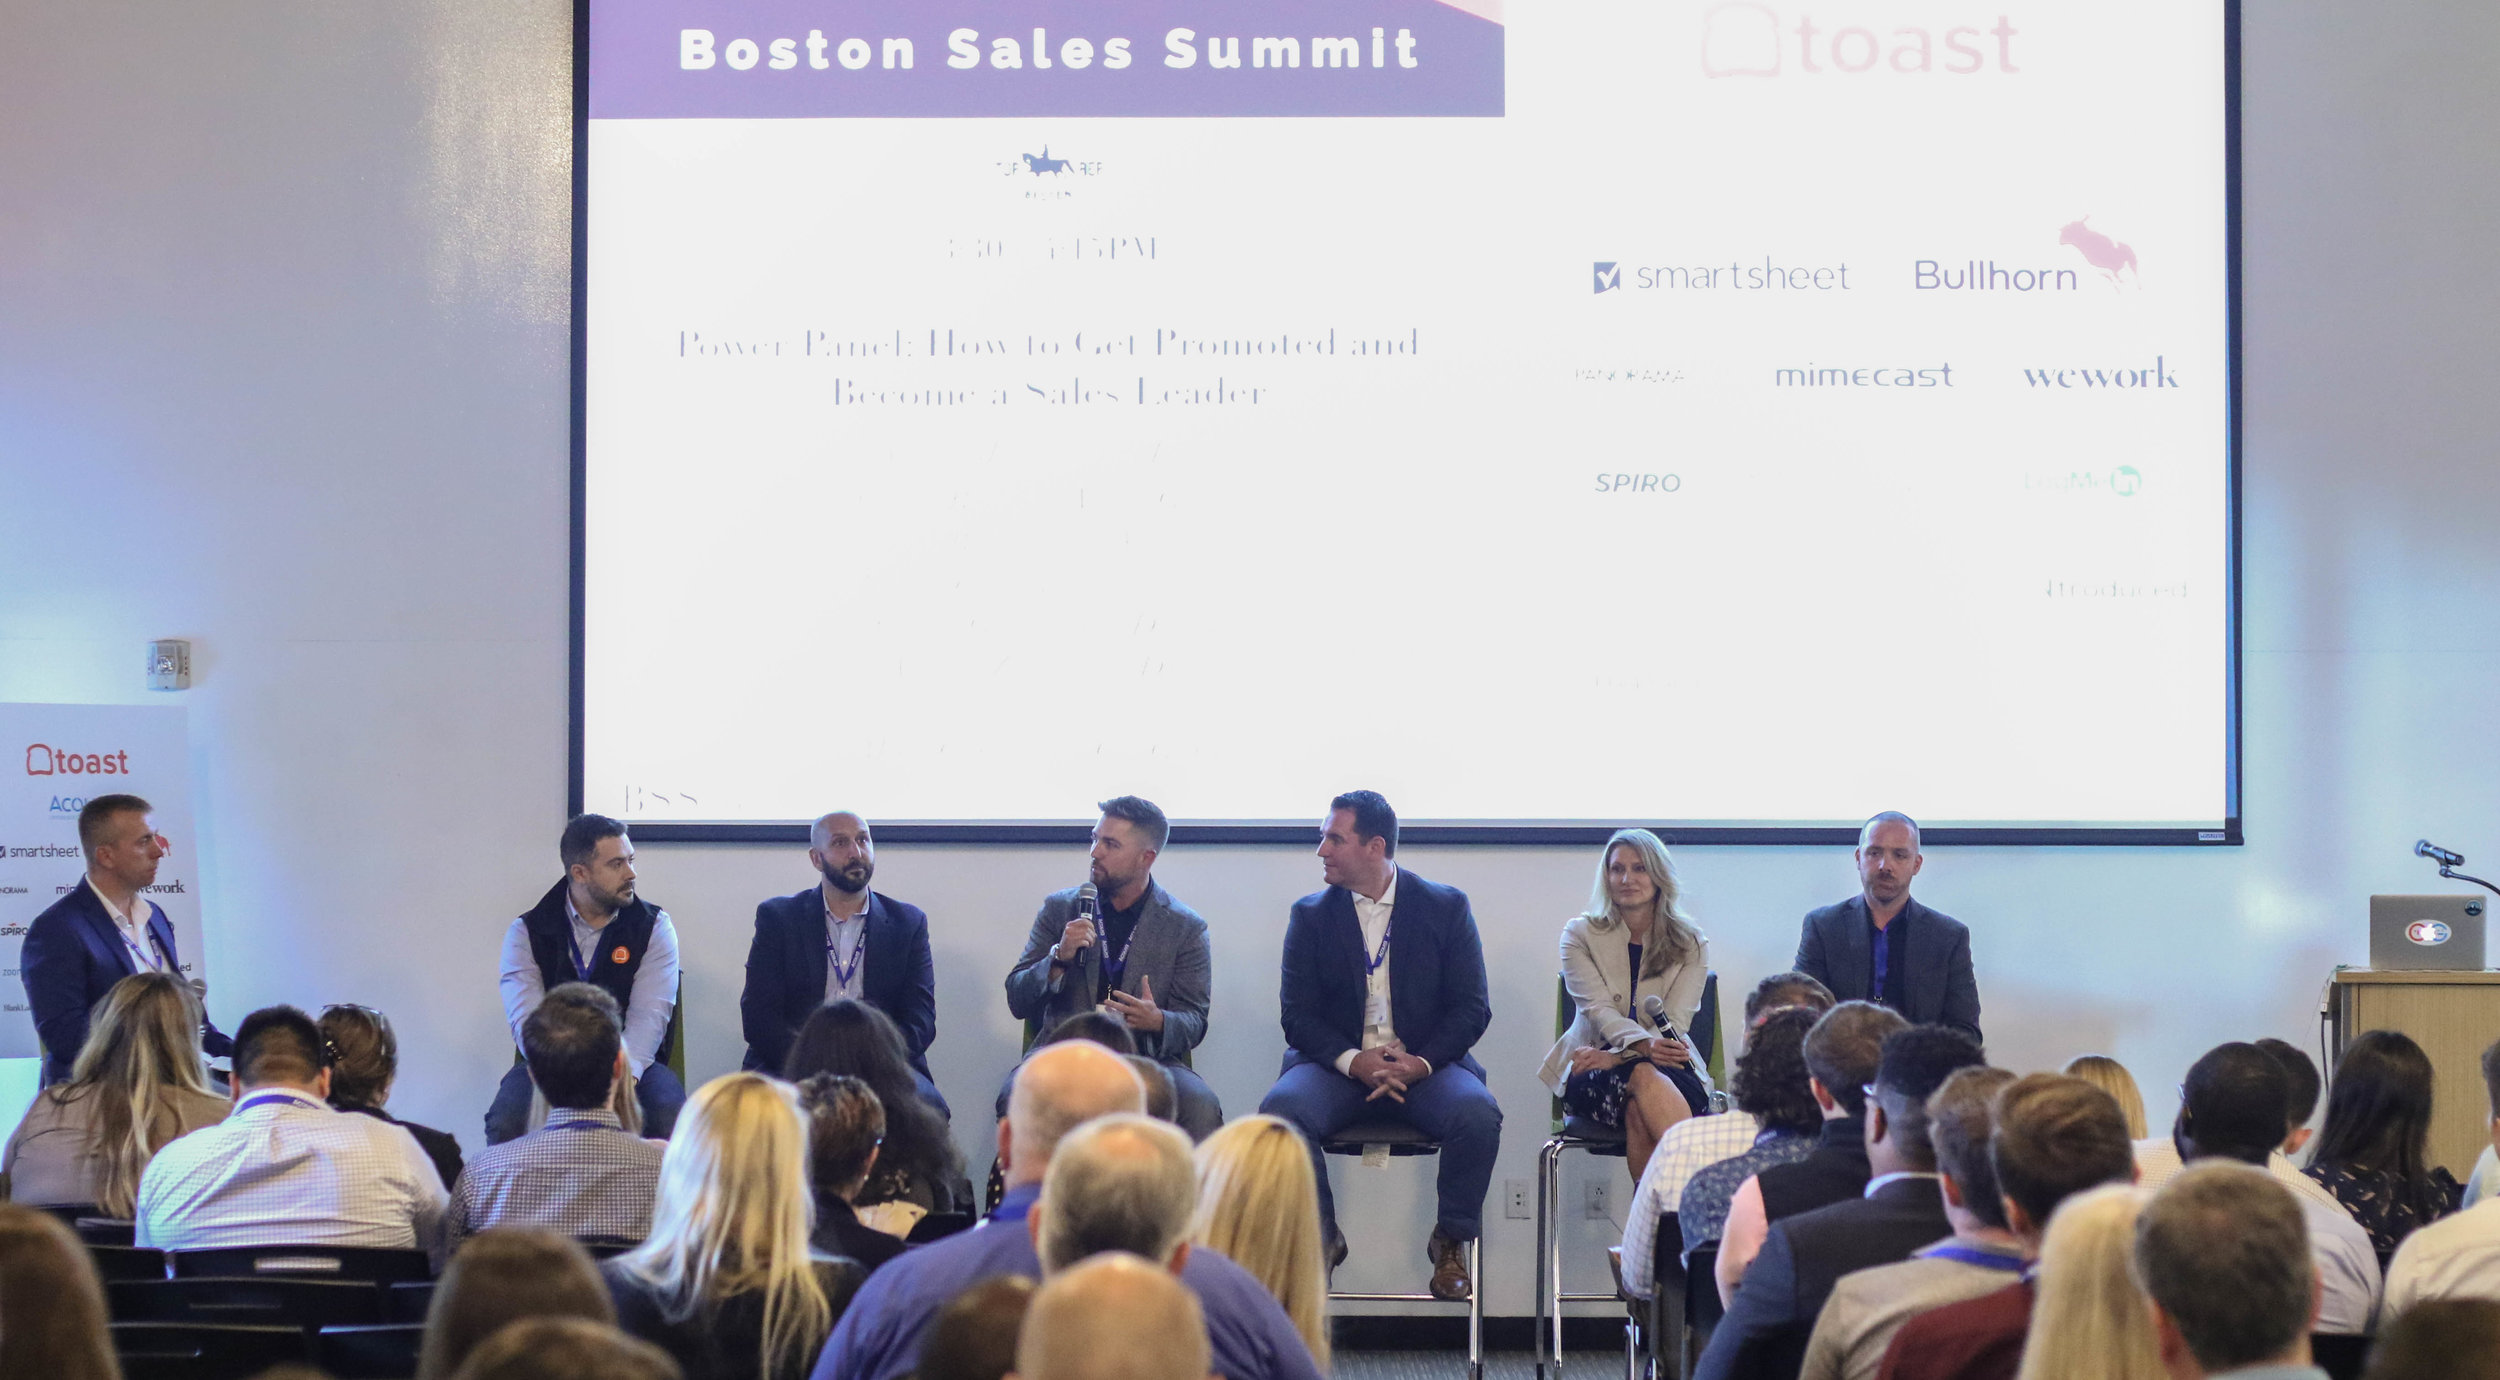 Boston Sales Summit 2018 -